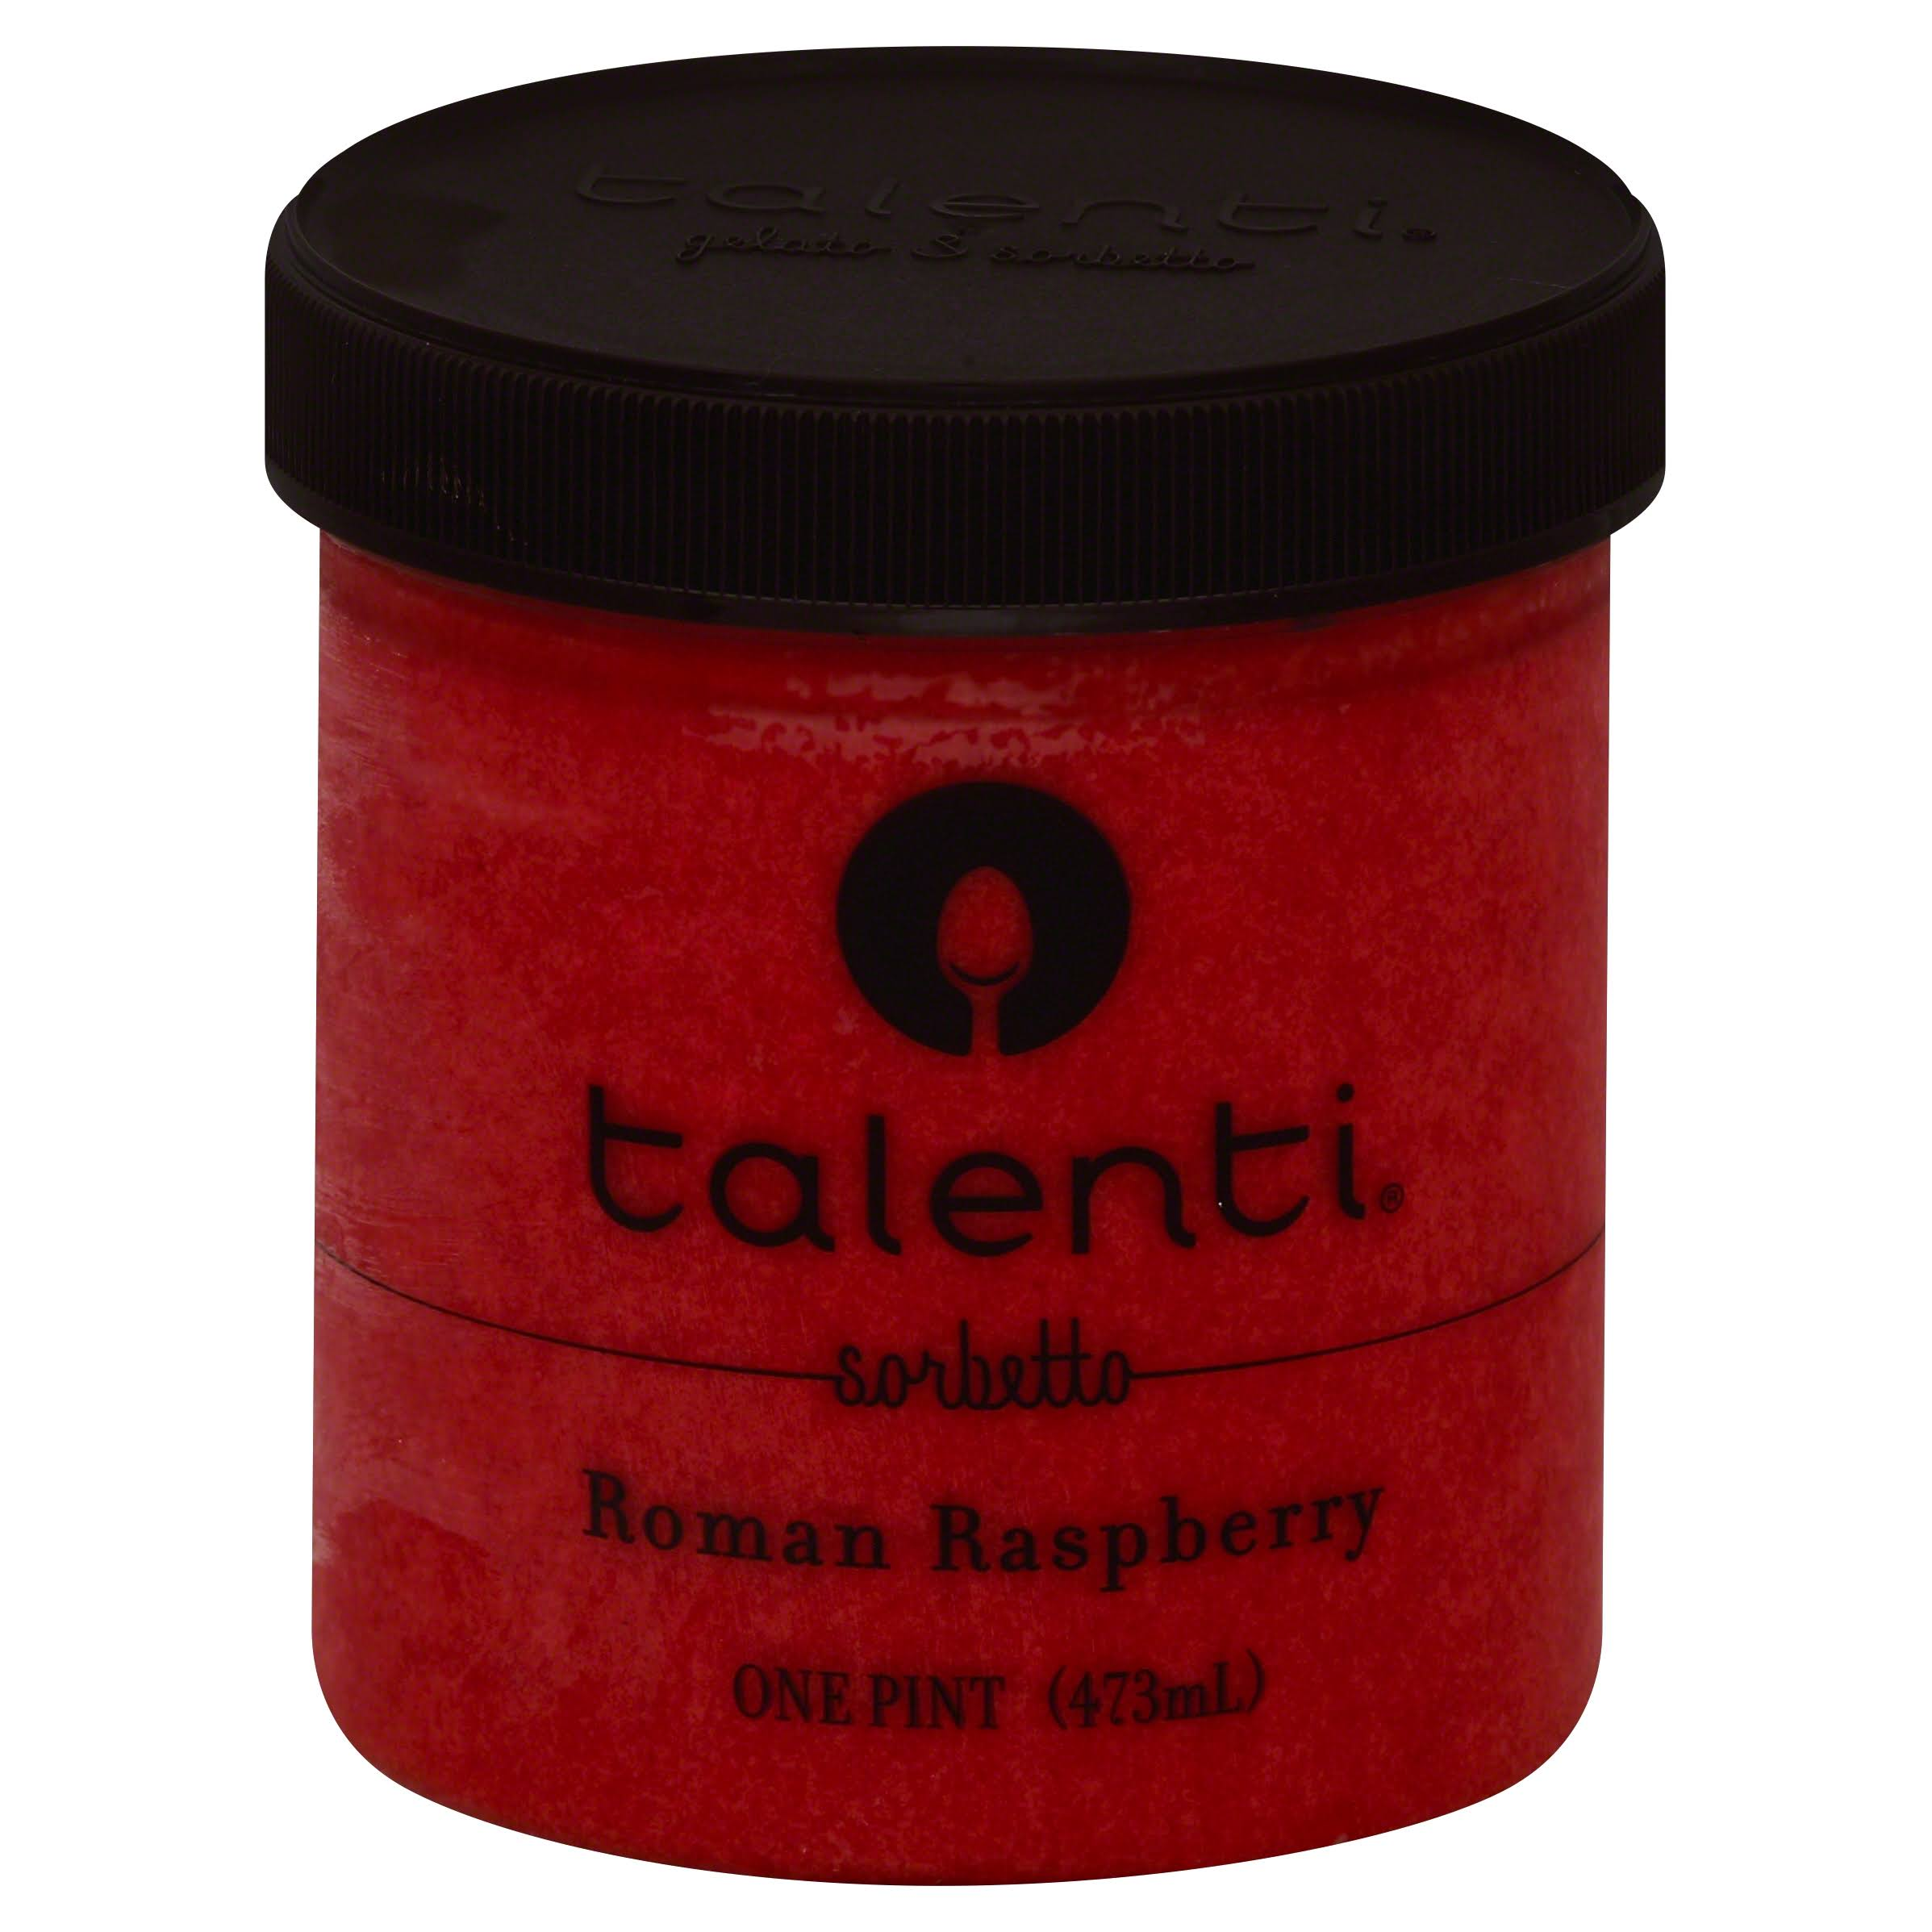 Talenti Sorbetto Ice Cream - Roman Raspberry, 1pt